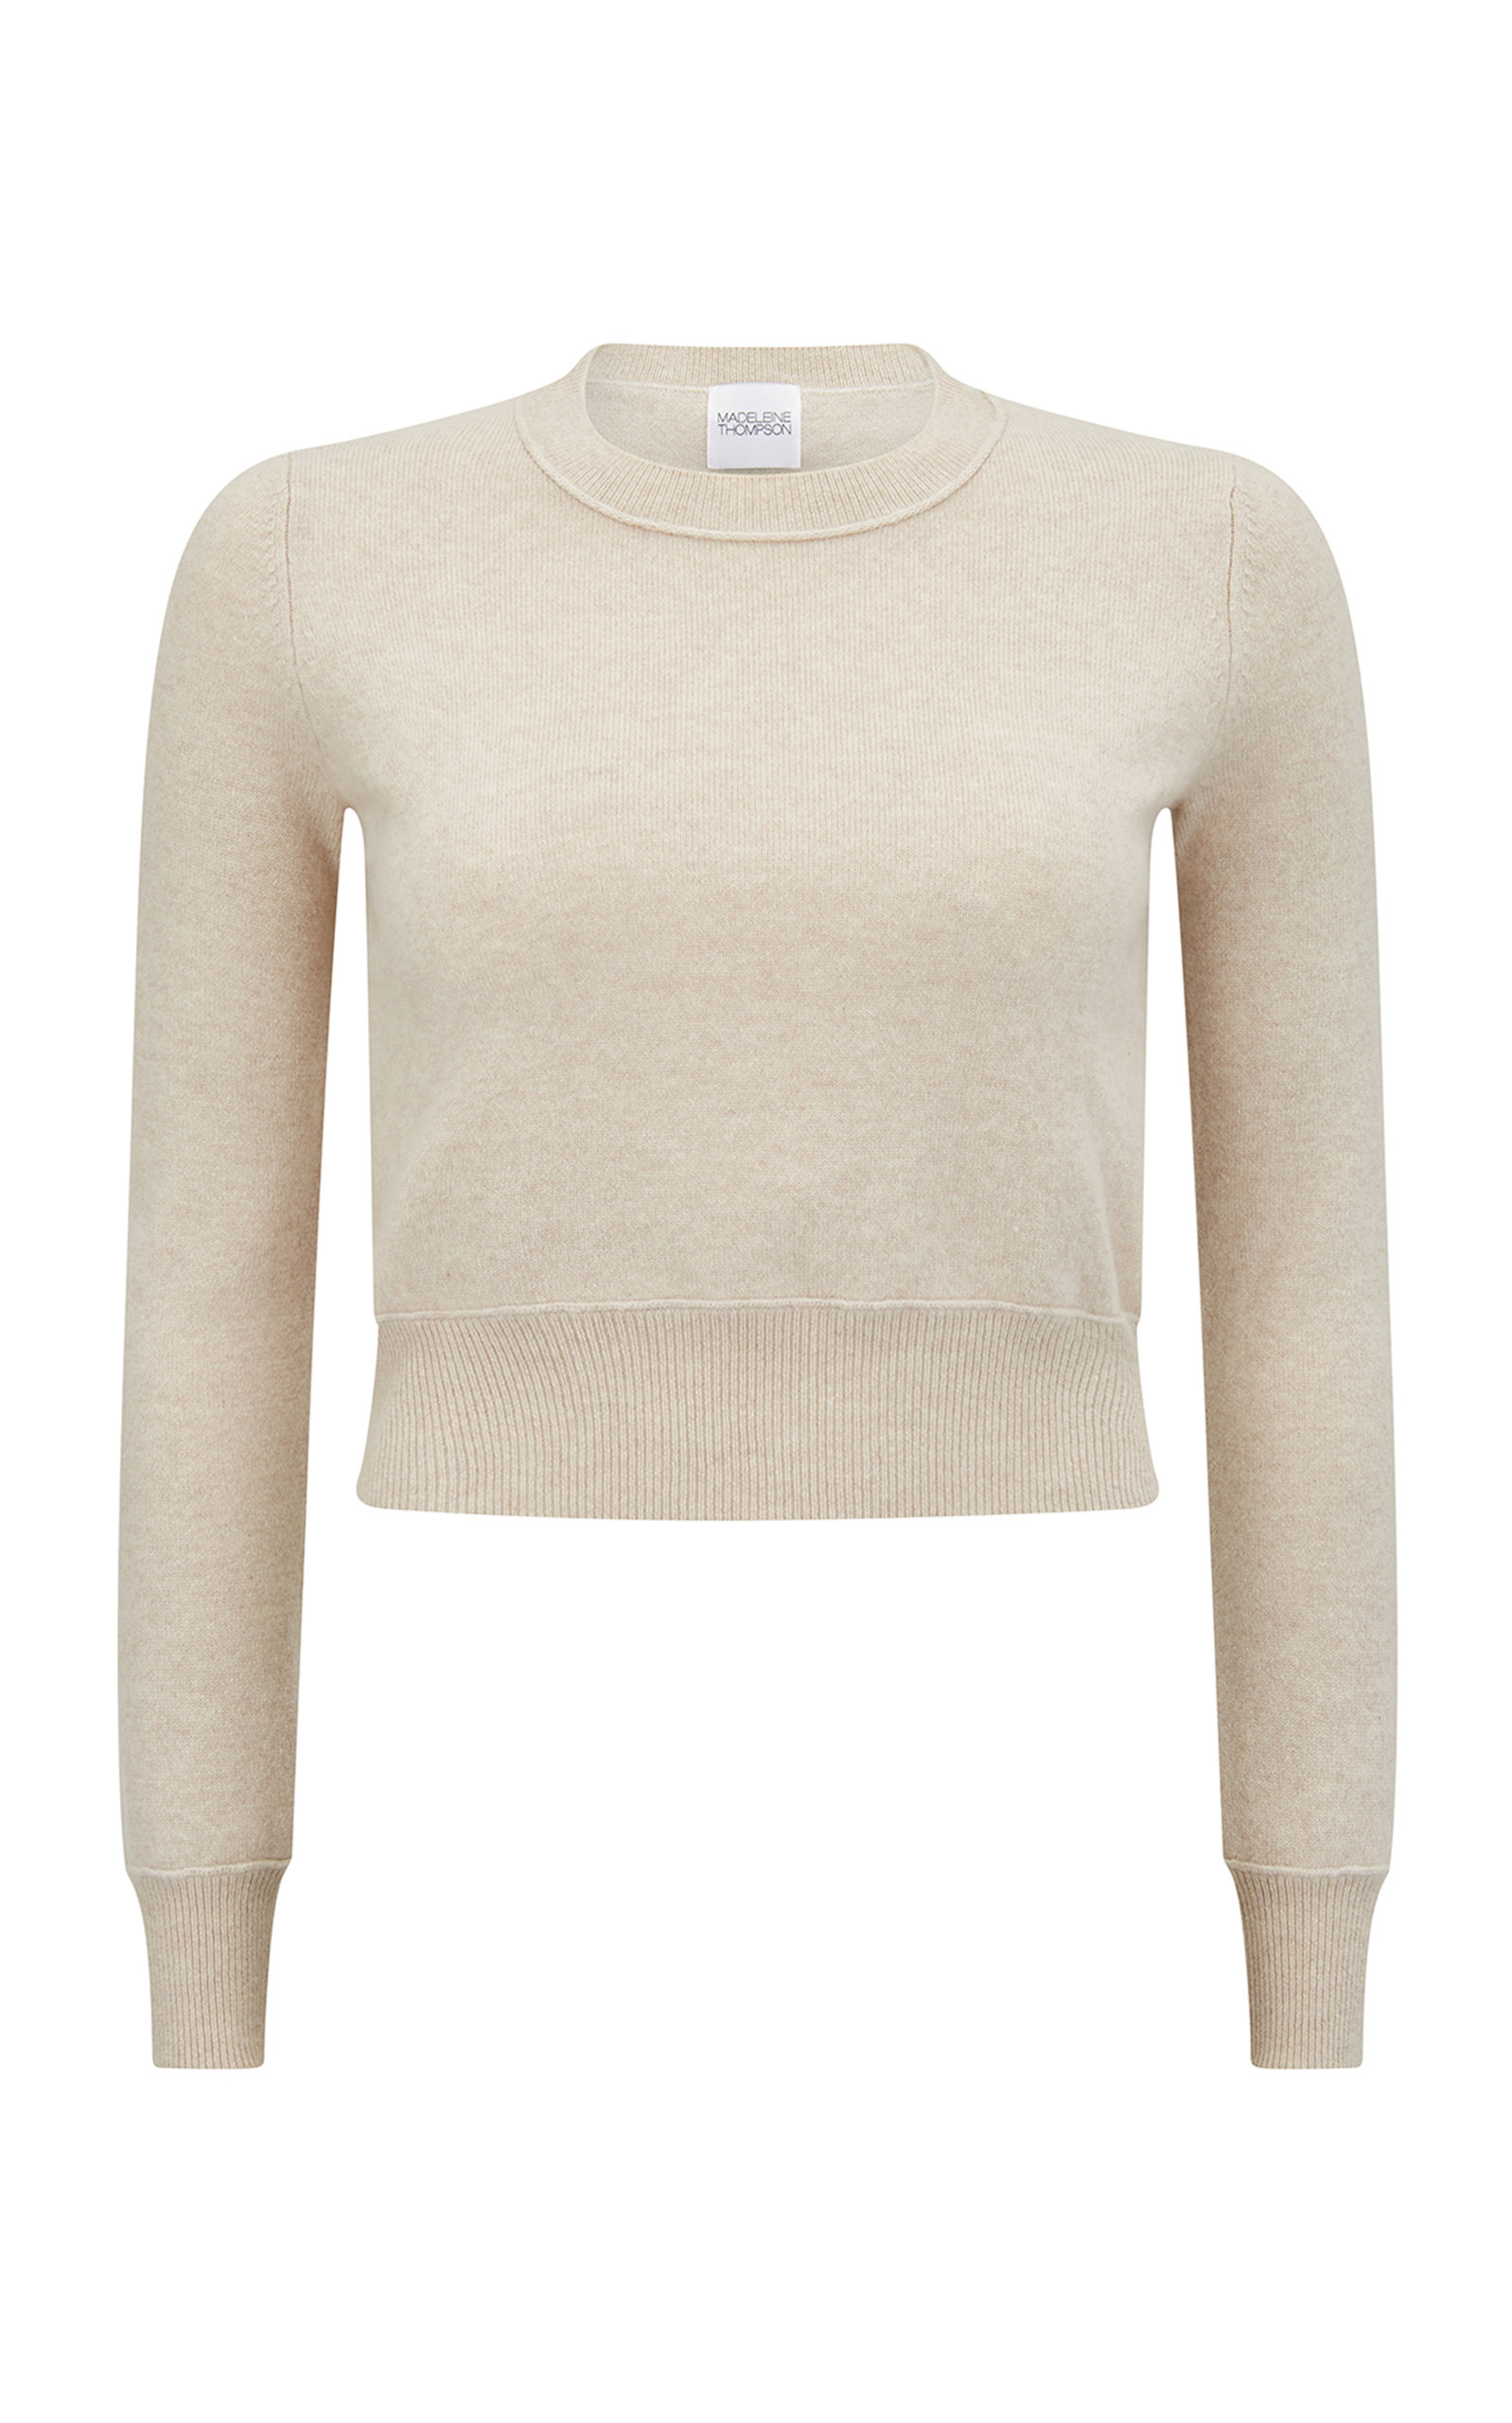 Women's Grindelwald Cropped Cashmere Top